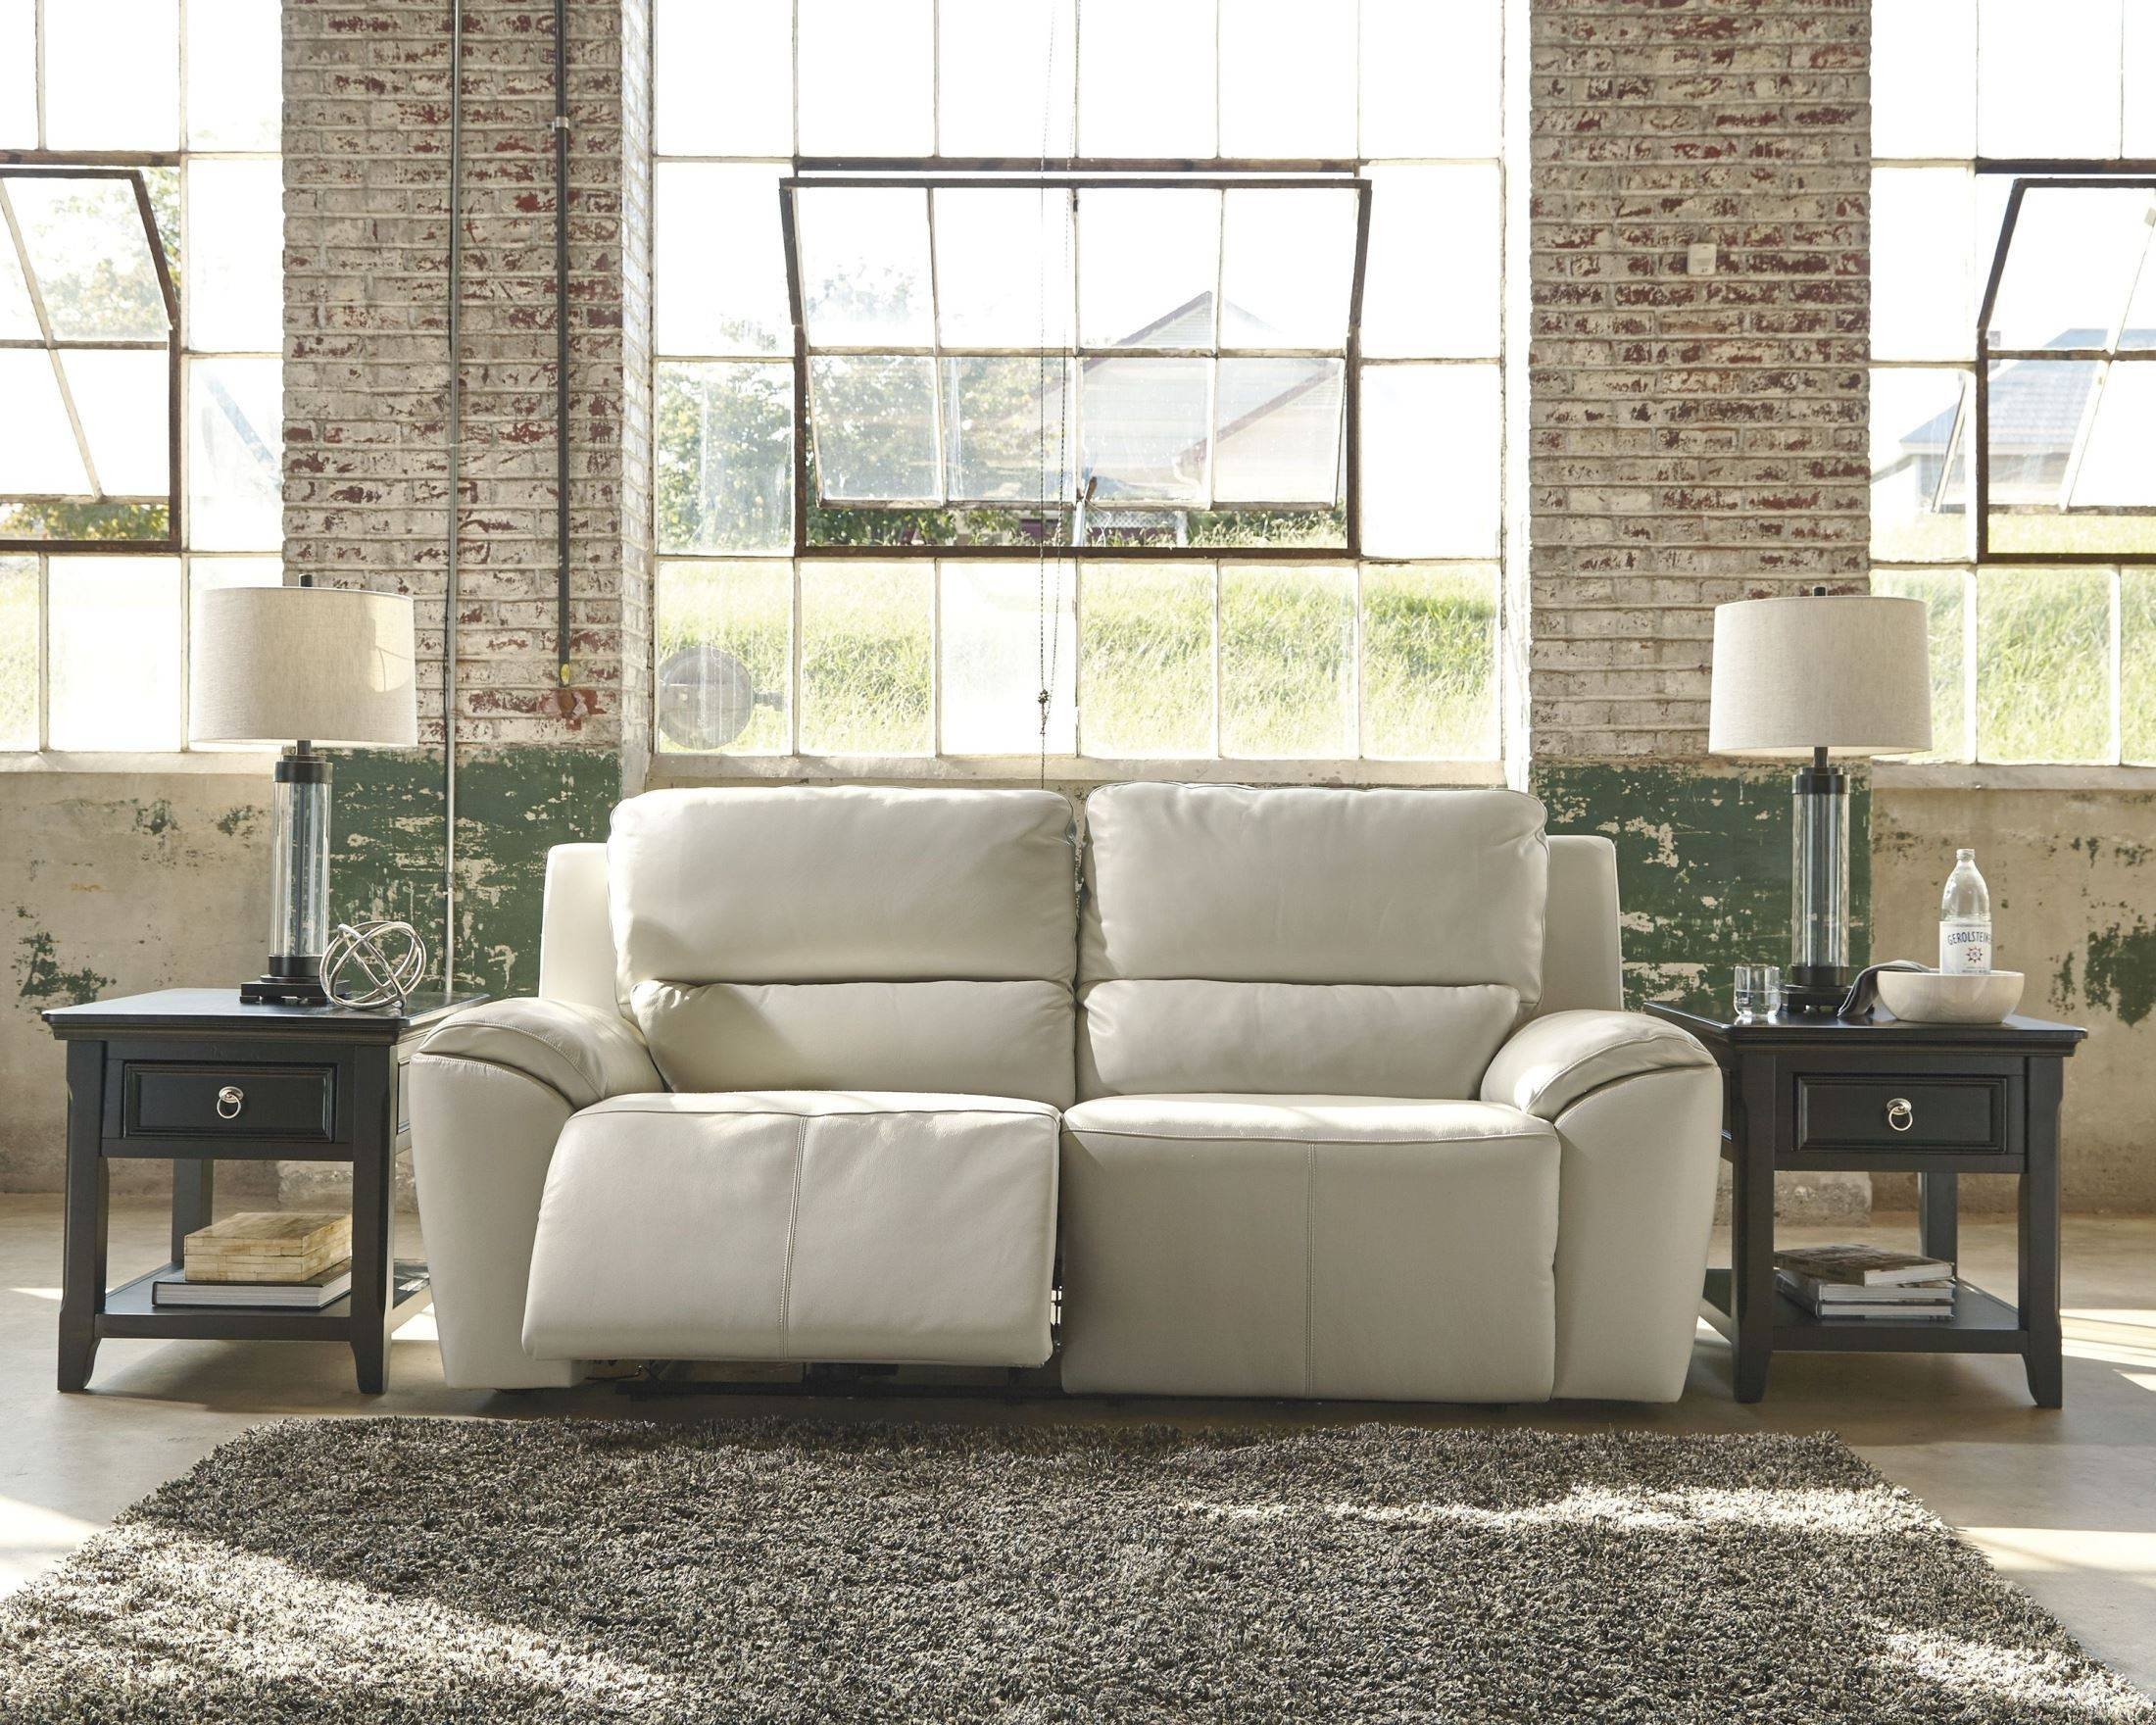 Valeton Cream 2 Seat Reclining Sofa with regard to 2 Seat Recliner Sofas (Image 30 of 30)